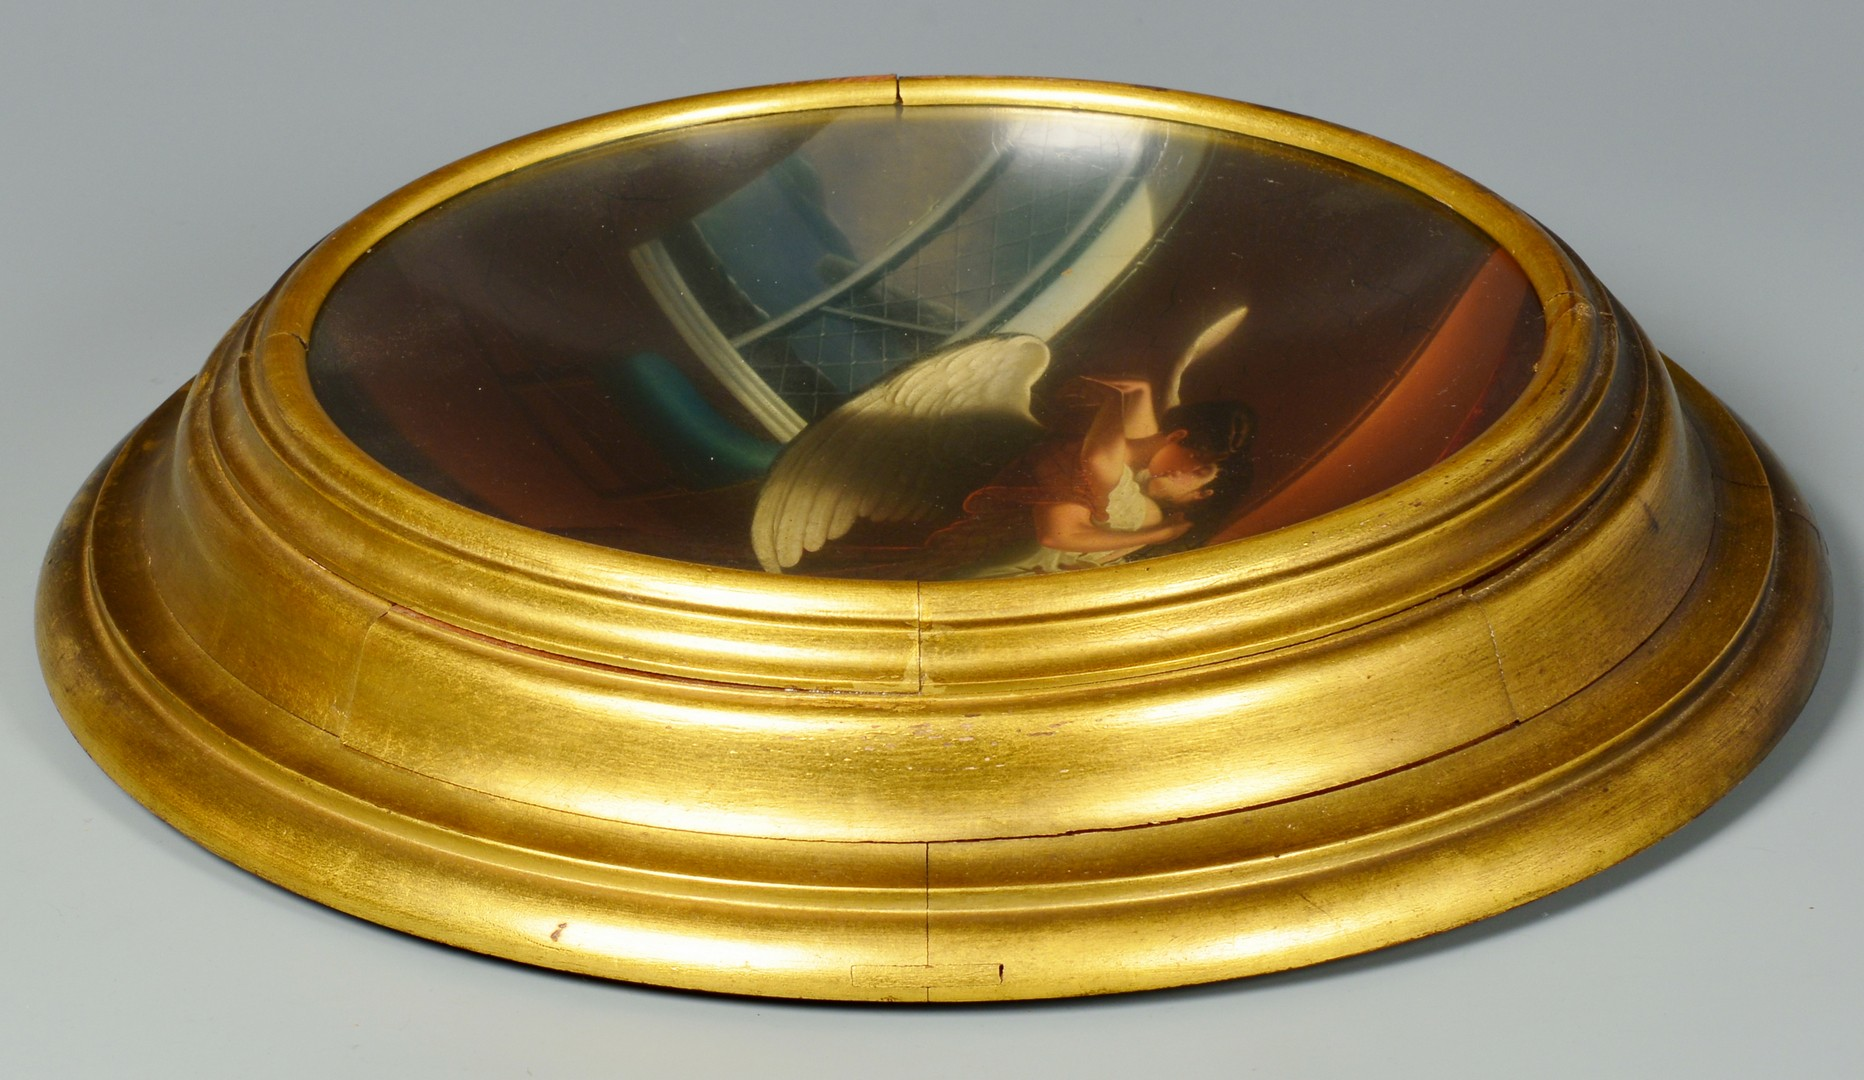 Lot 232: Russian Lacquer Bowl w/ Imperial Marks